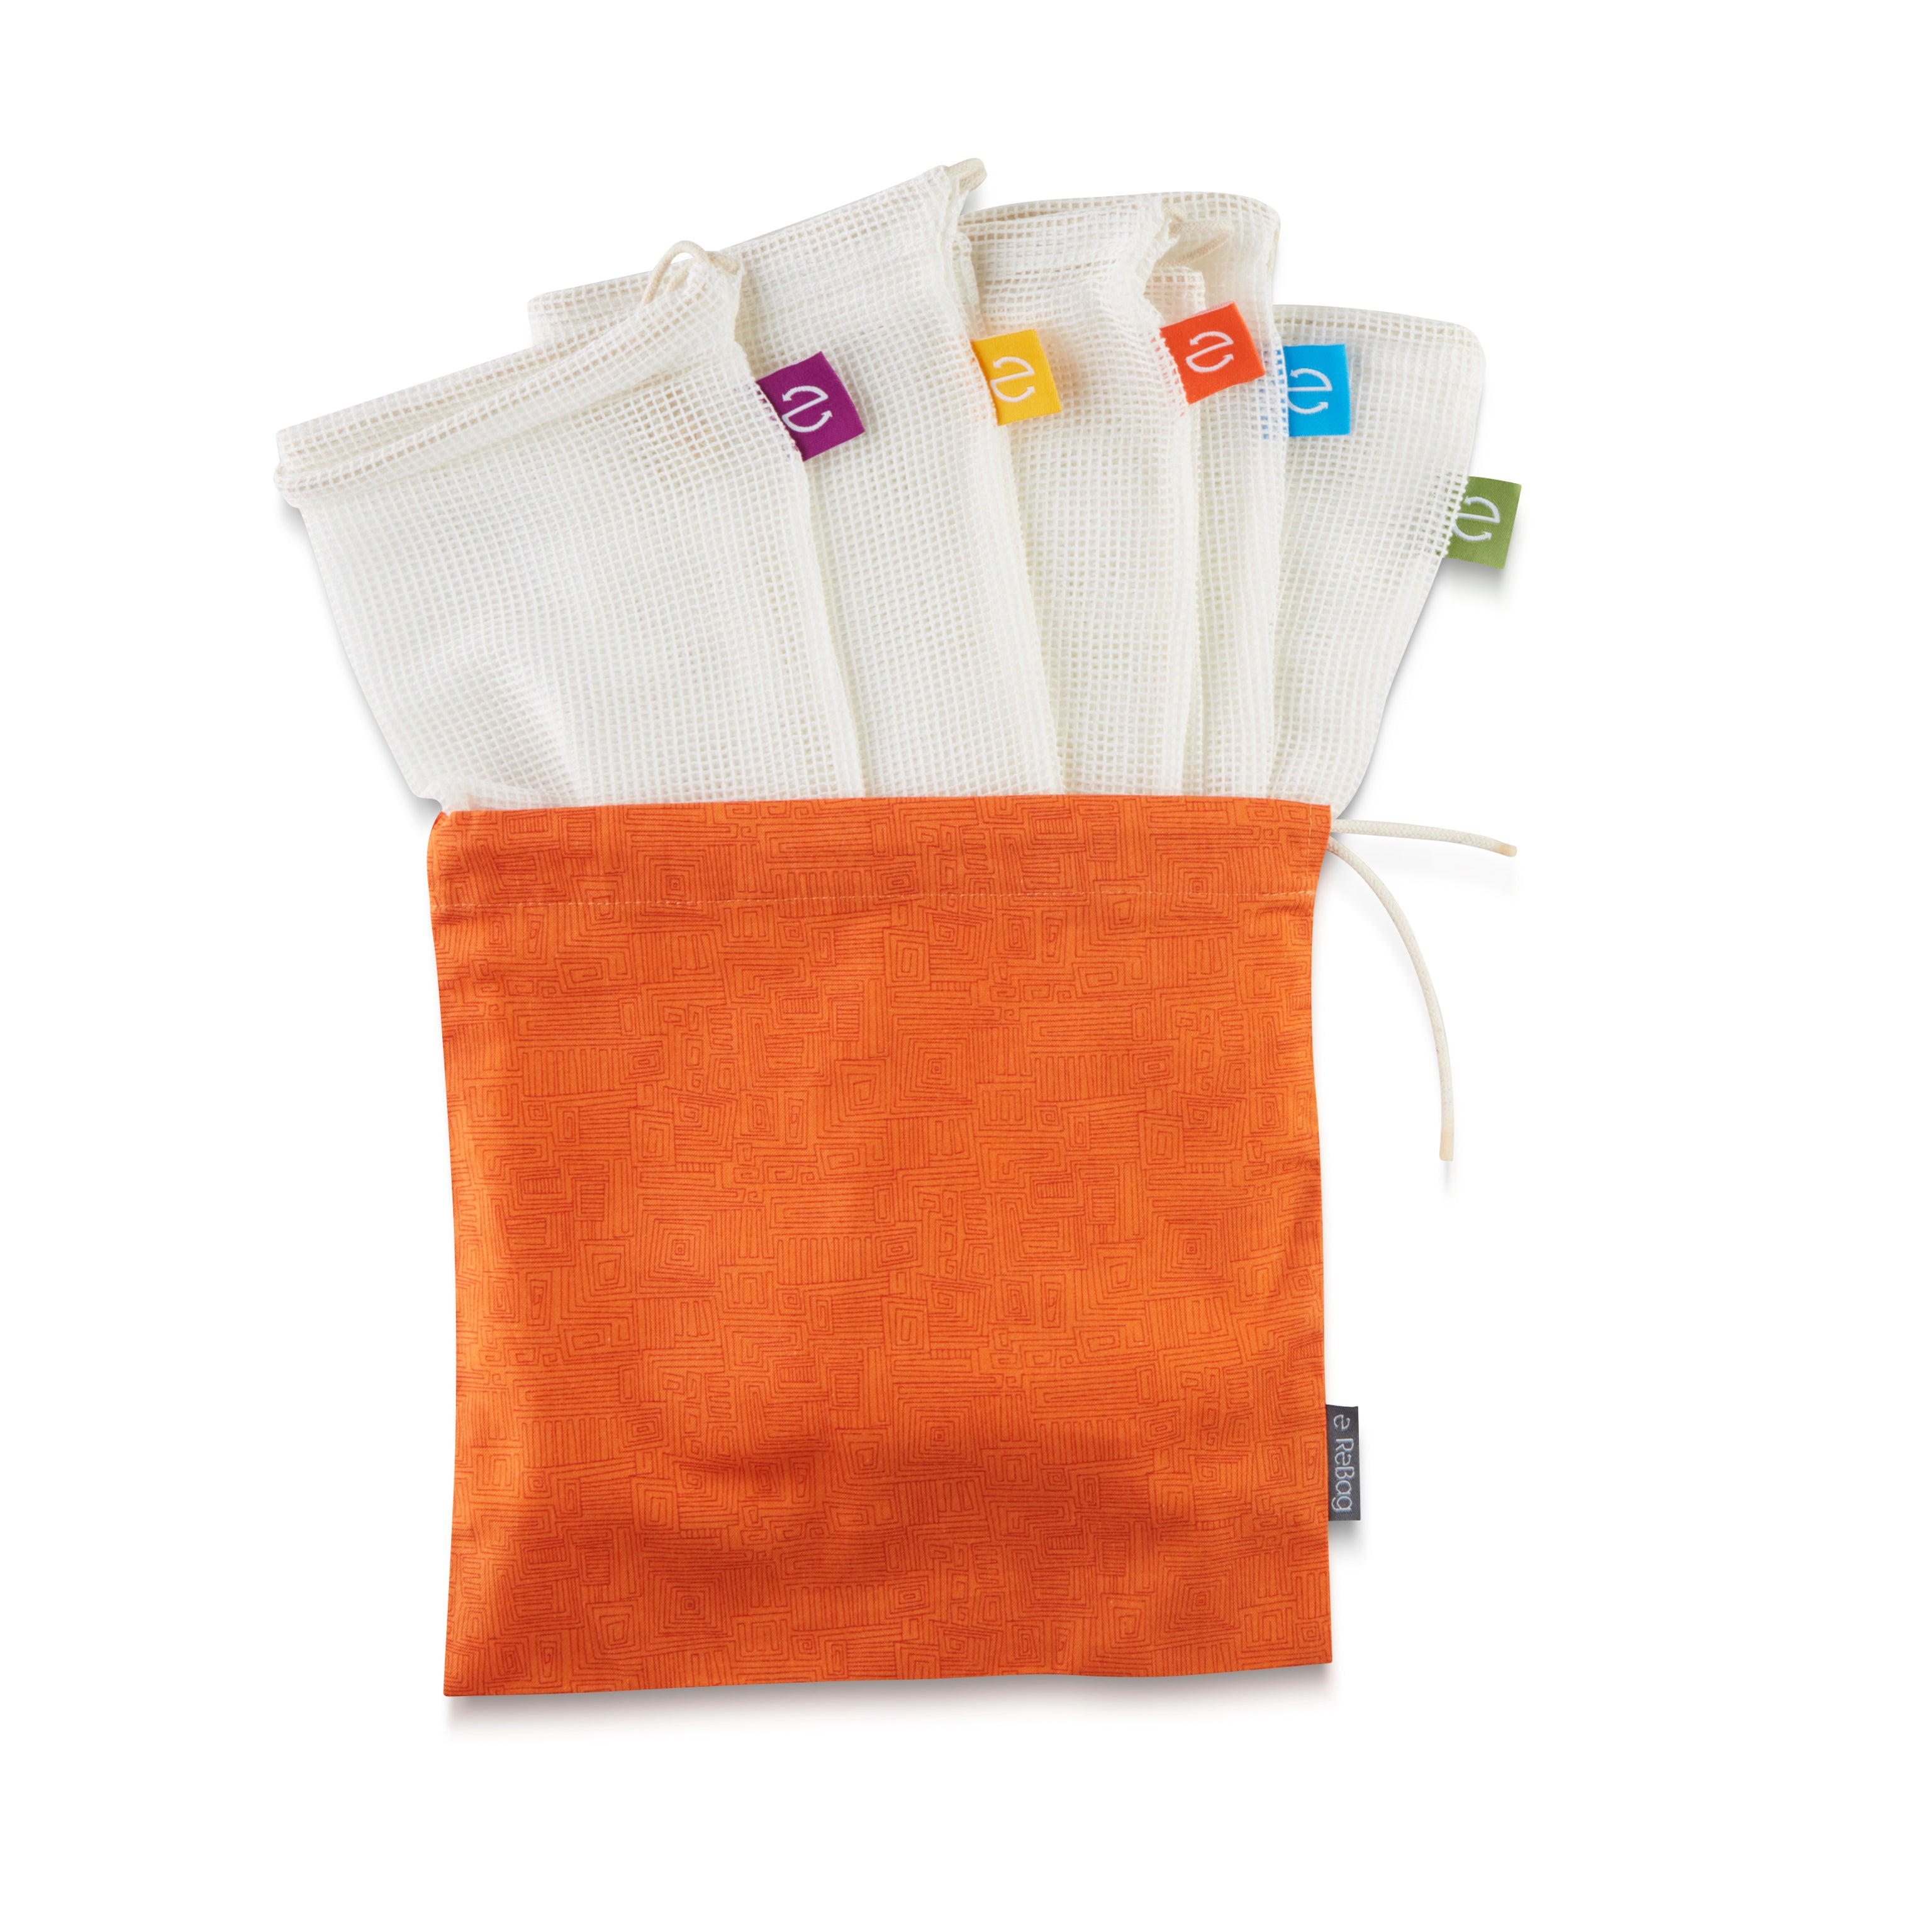 5x Produce Bags + Orange Essential Carry Bag